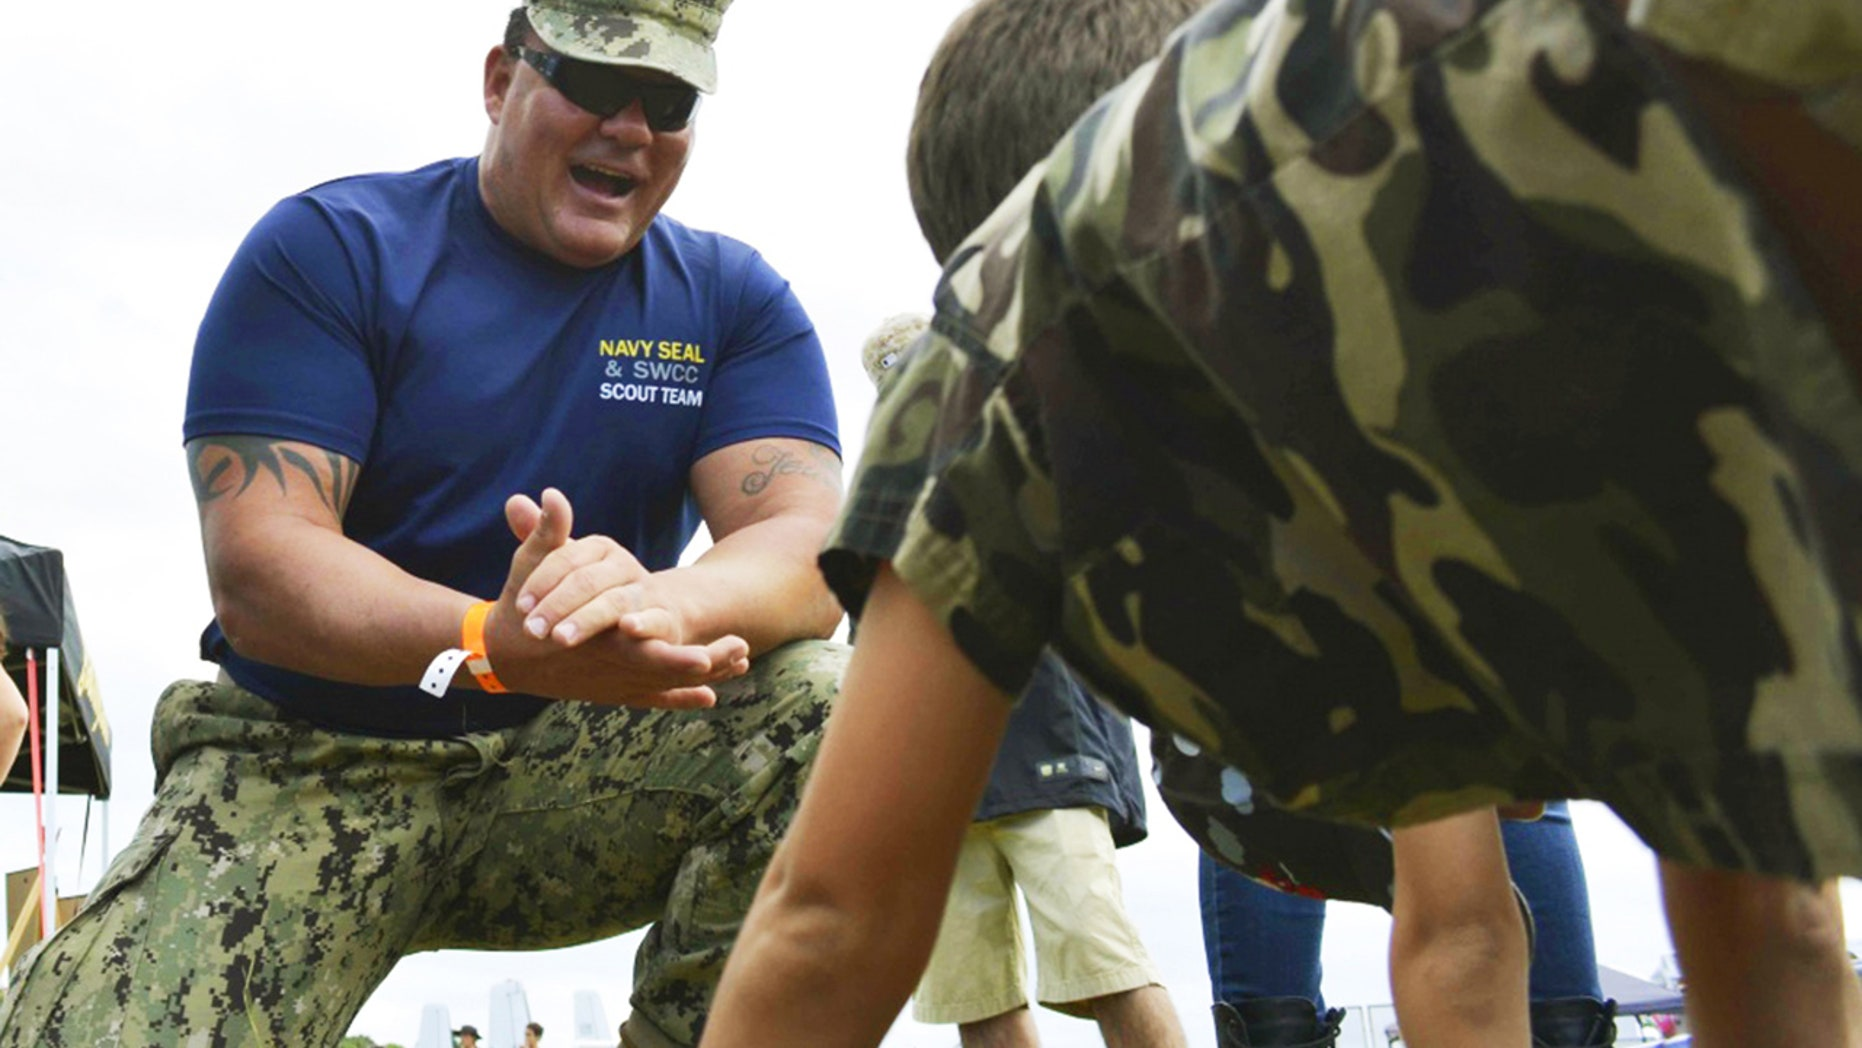 This Nov. 6. 2016 photo provided by the U.S. Navy shows Chief Petty Officer Joseph Schmidt III, assigned to the Navy SEAL and SWCC Scout Team, encouraging a young fan to do pushups at the 2016 Stuart Air Show in Stuart, Fla.